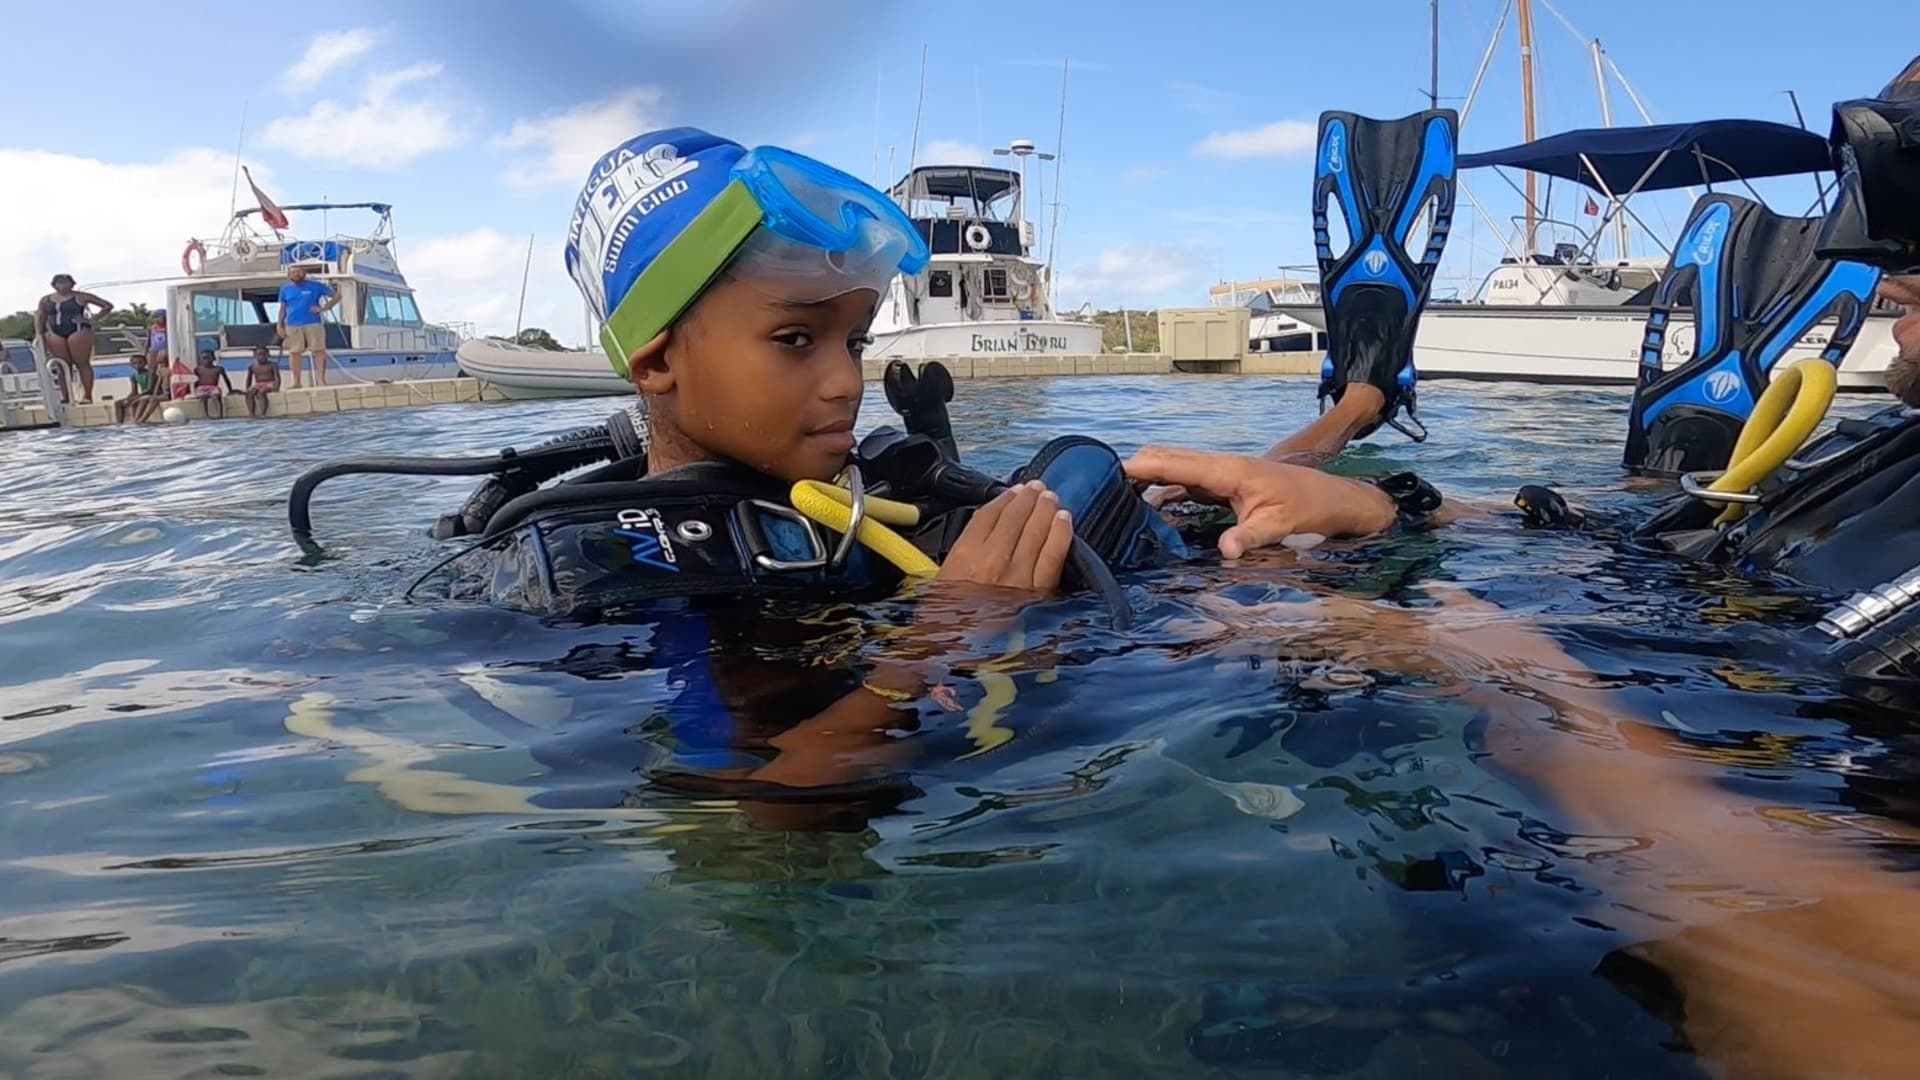 My daughter learned to scuba dive under the close watch of Dive Carib in English Harbor.